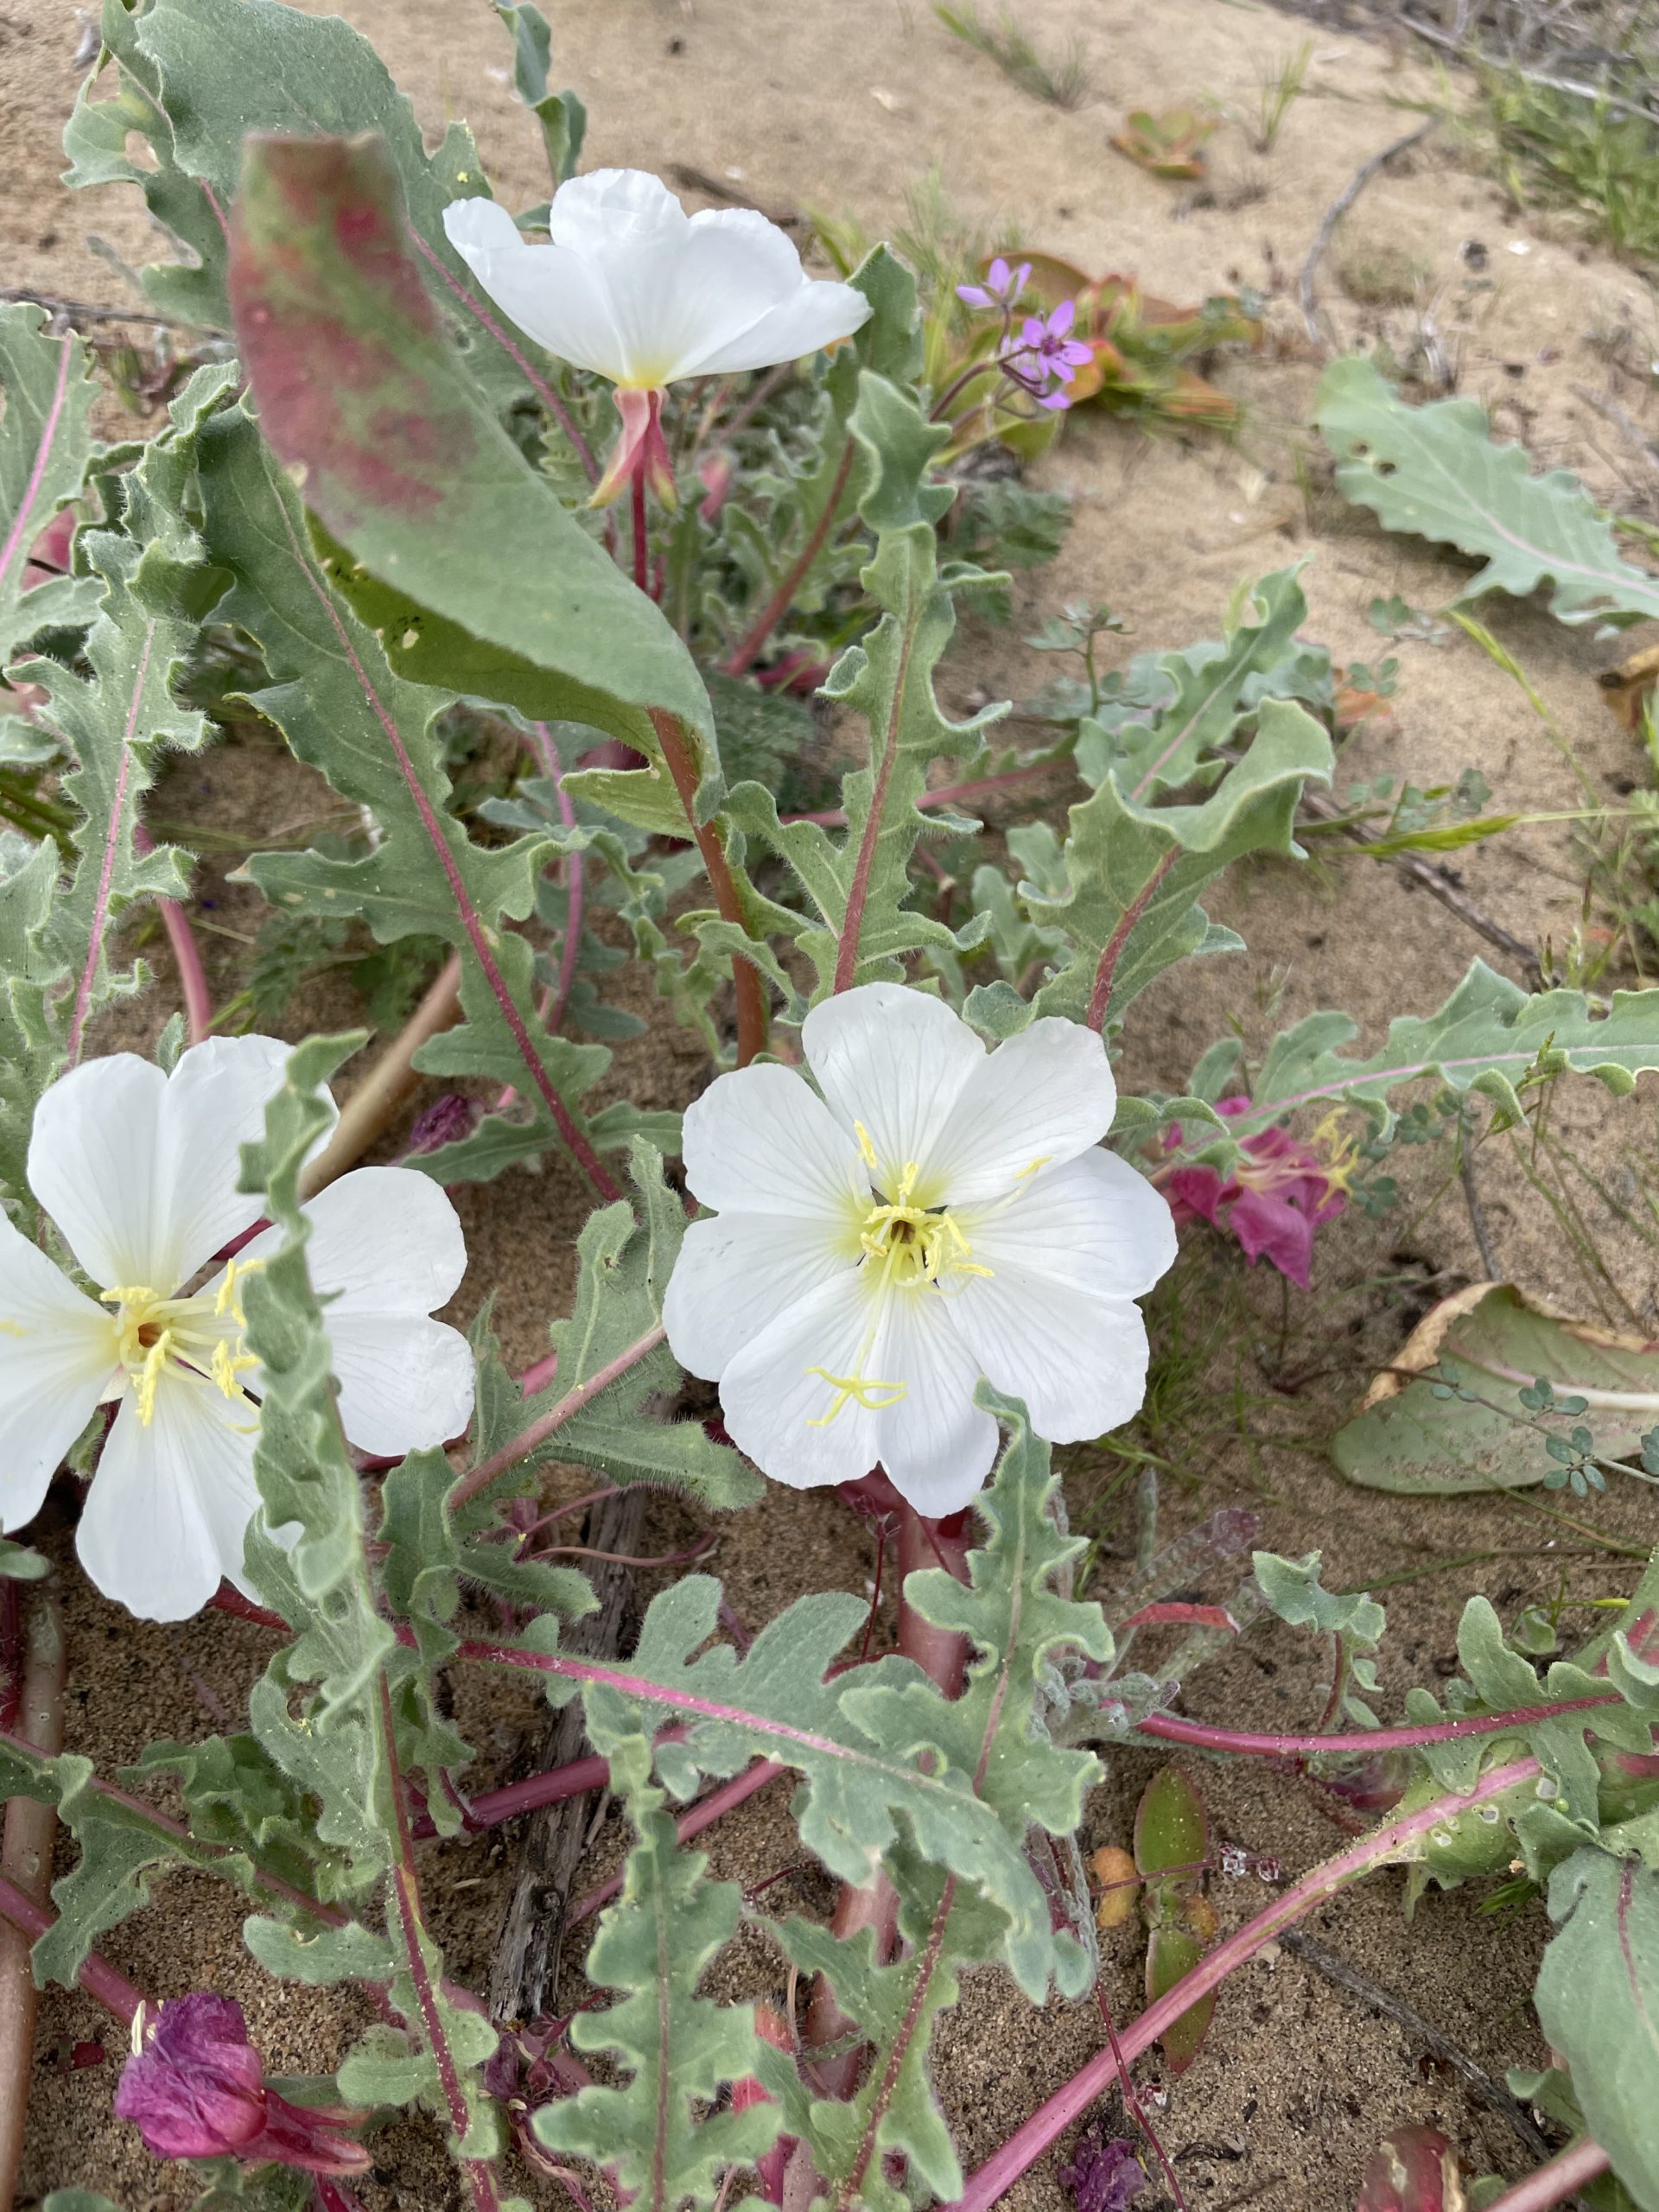 Image of Oenothera wigginsii, a narrow endemic found in Baja.